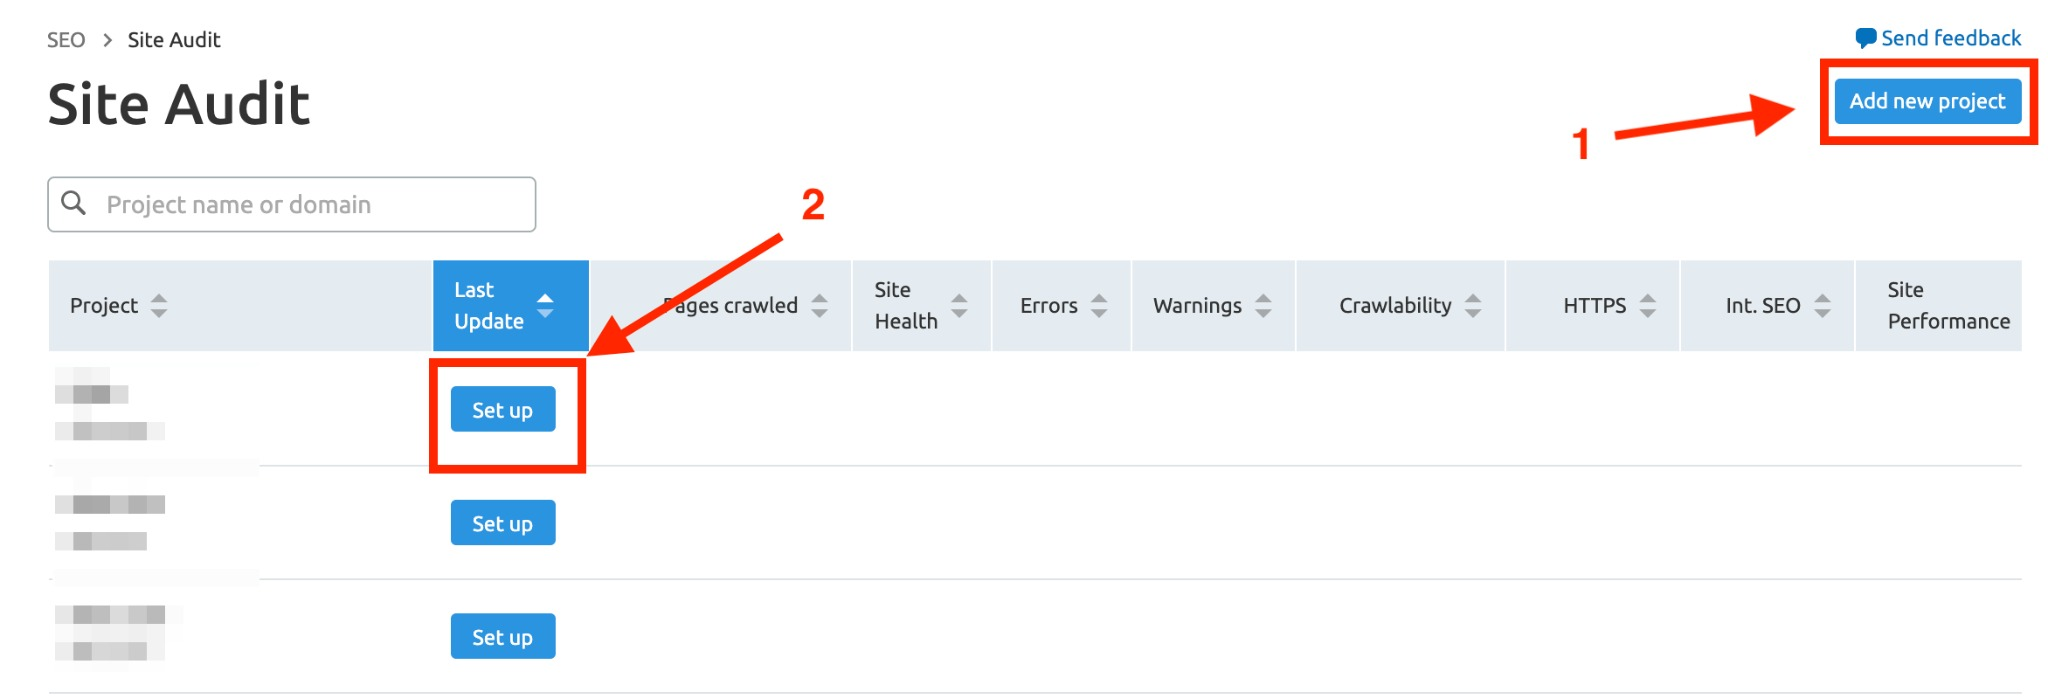 How to Organize Your Work in Site Audit? image 1